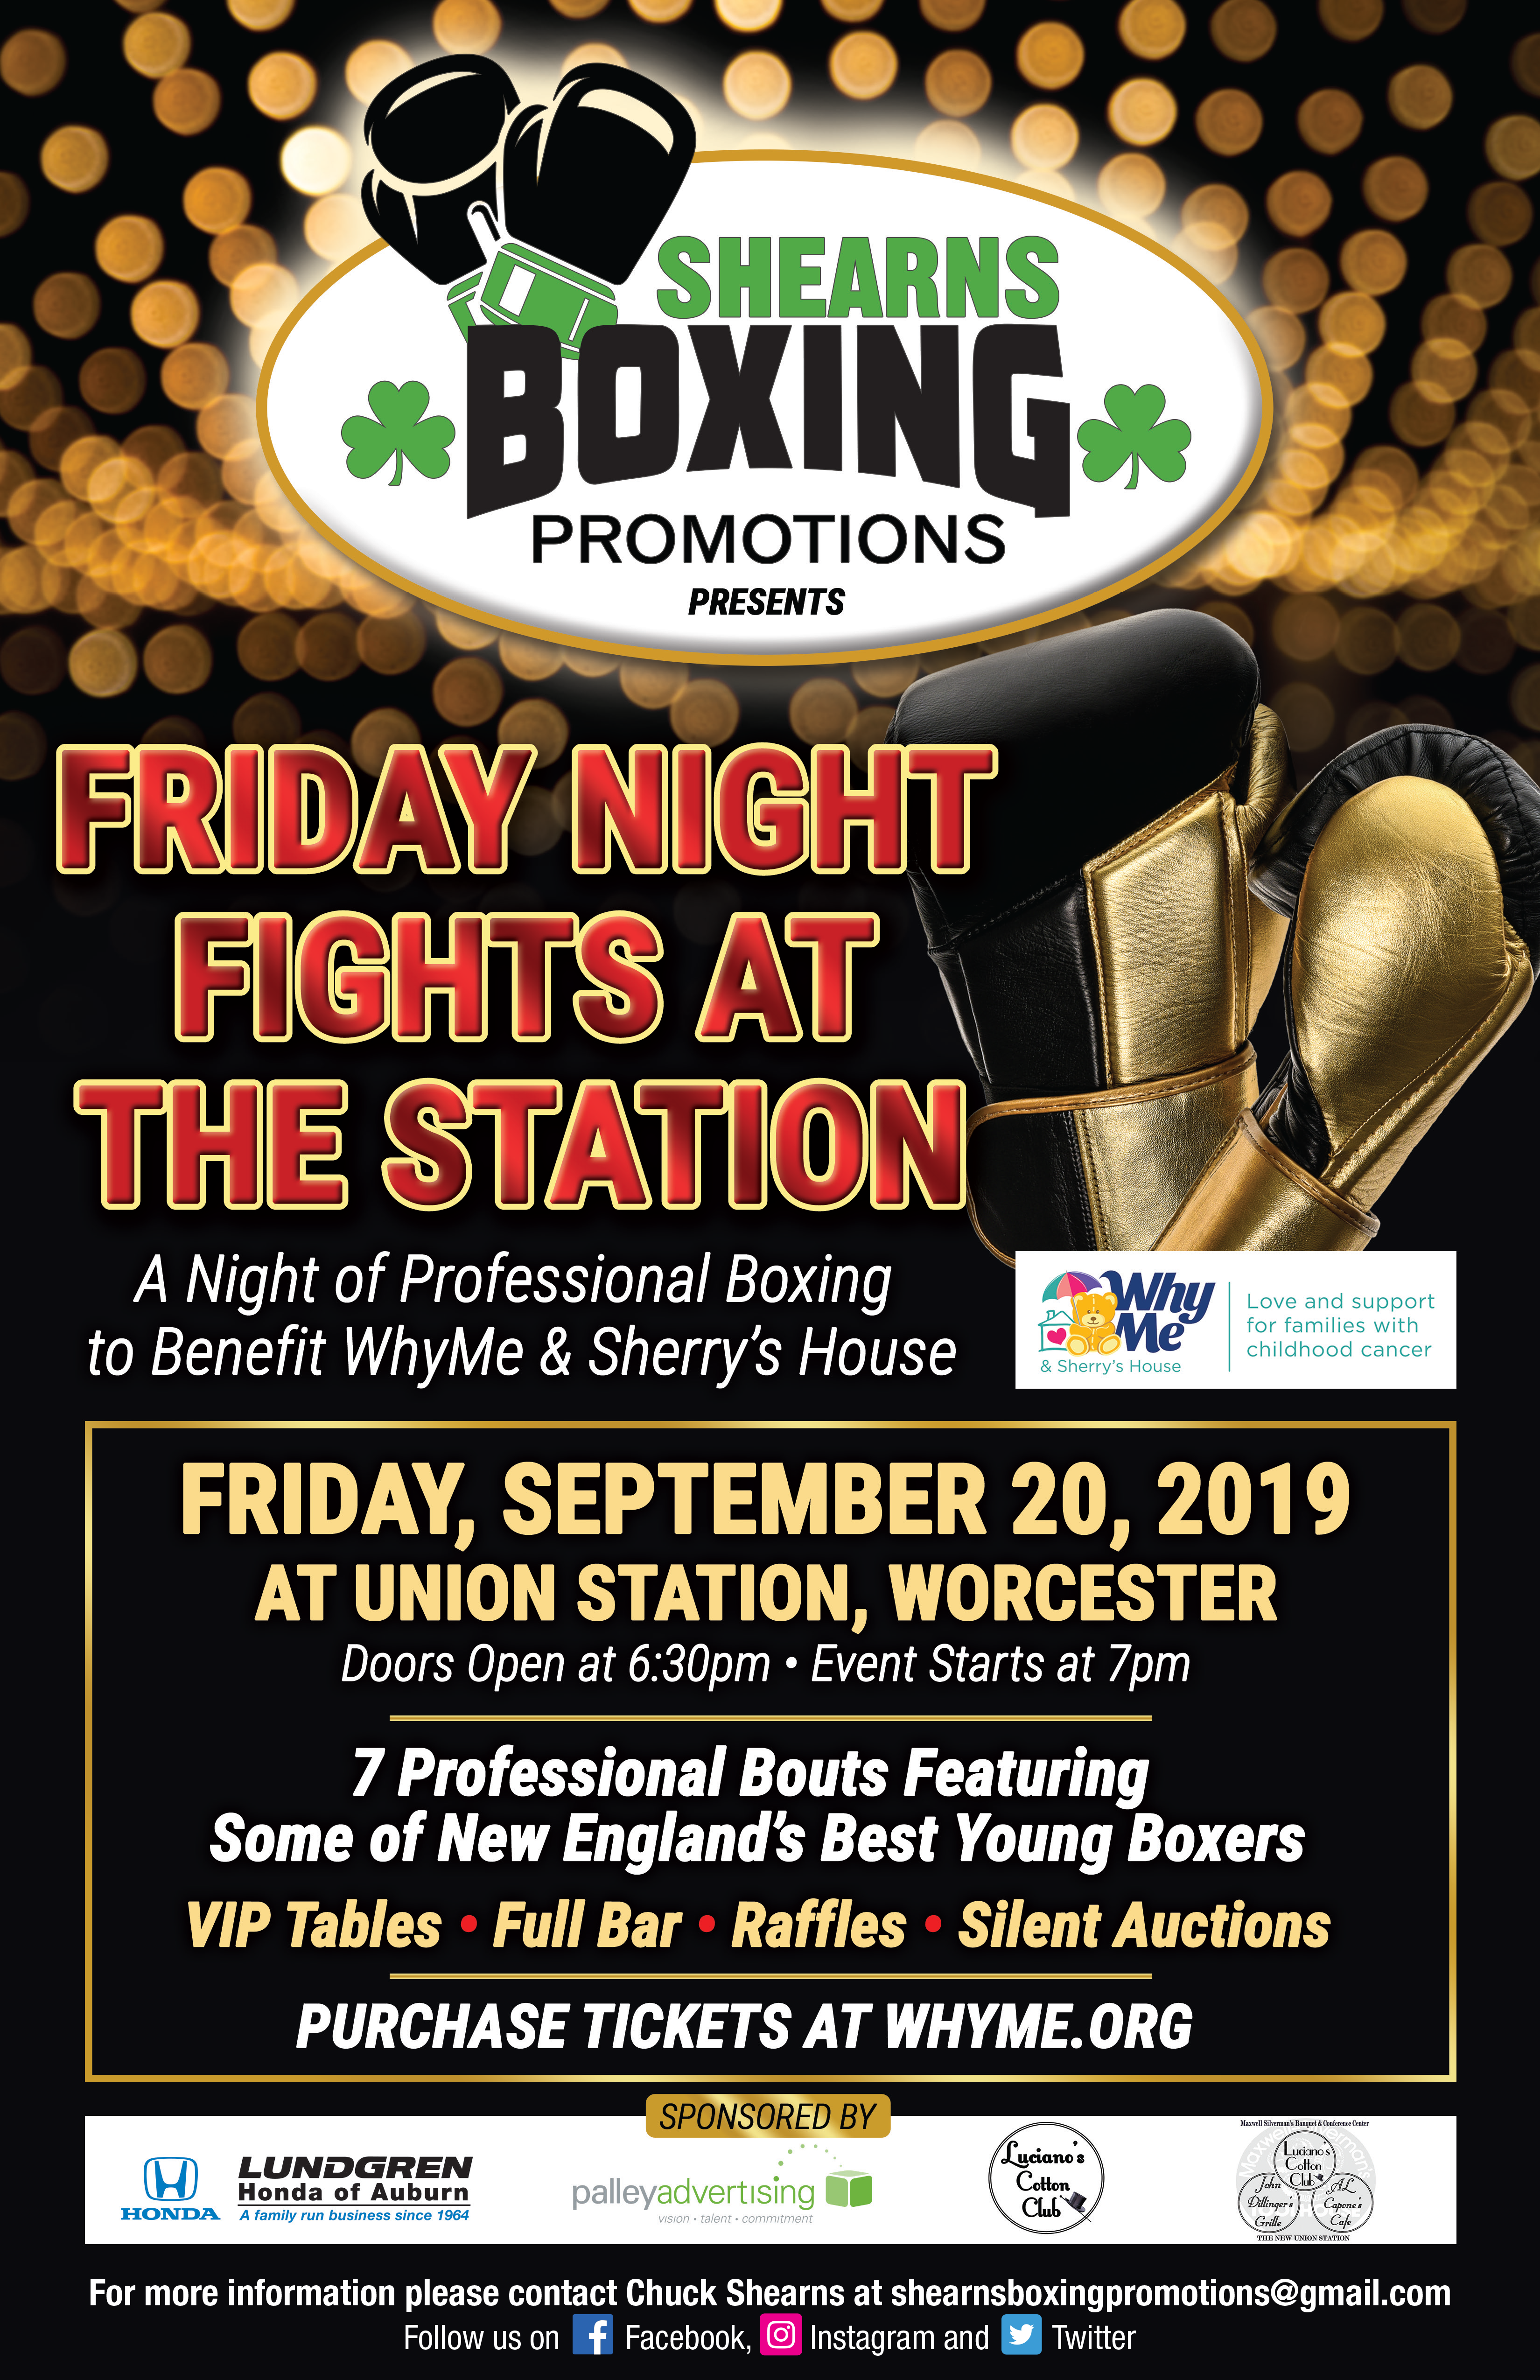 Friday Night Fights at the Station